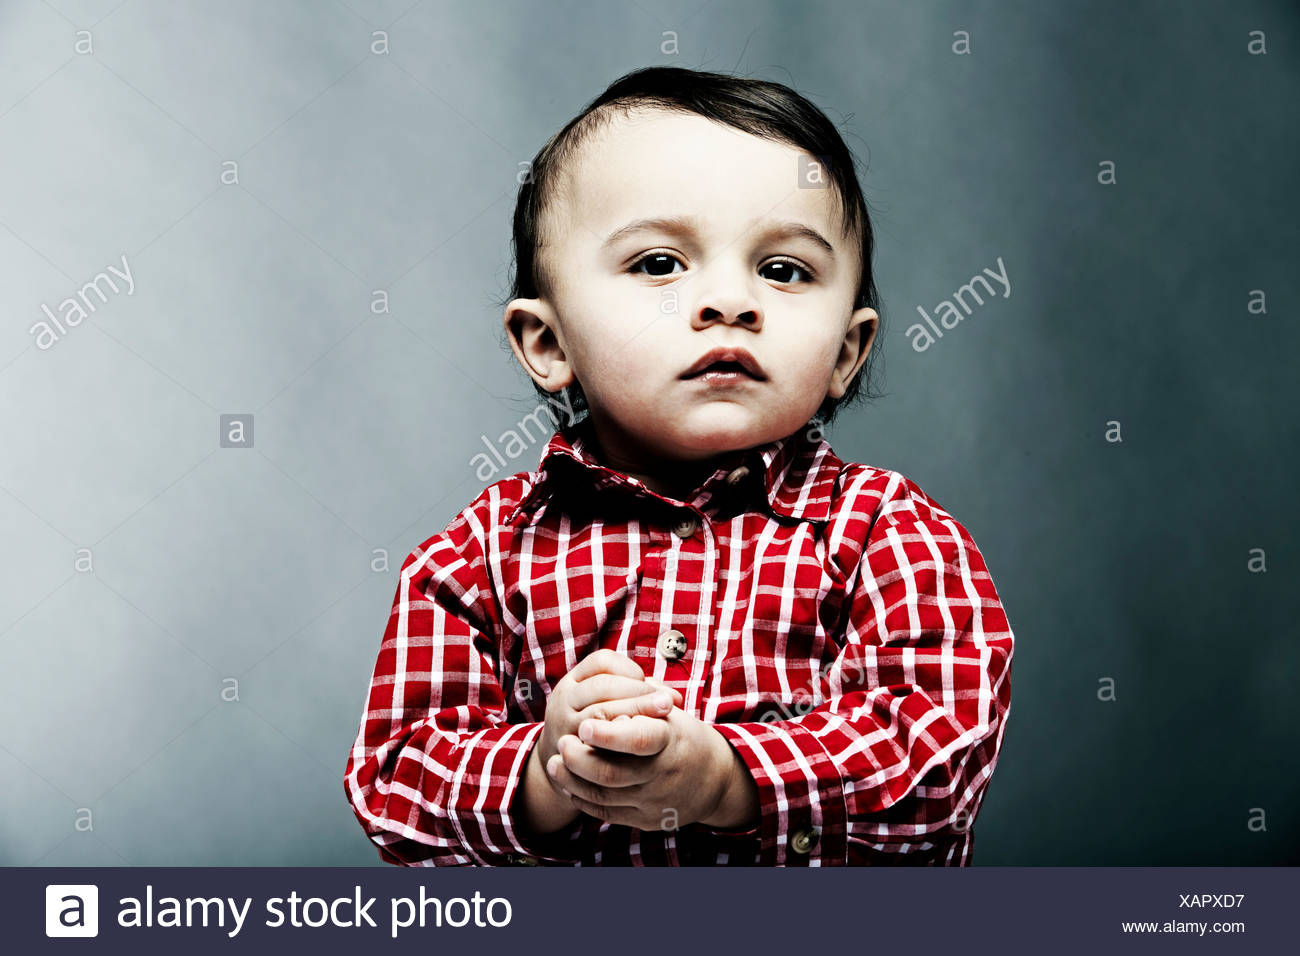 Portrait of baby boy wearing checked shirt - Stock Image